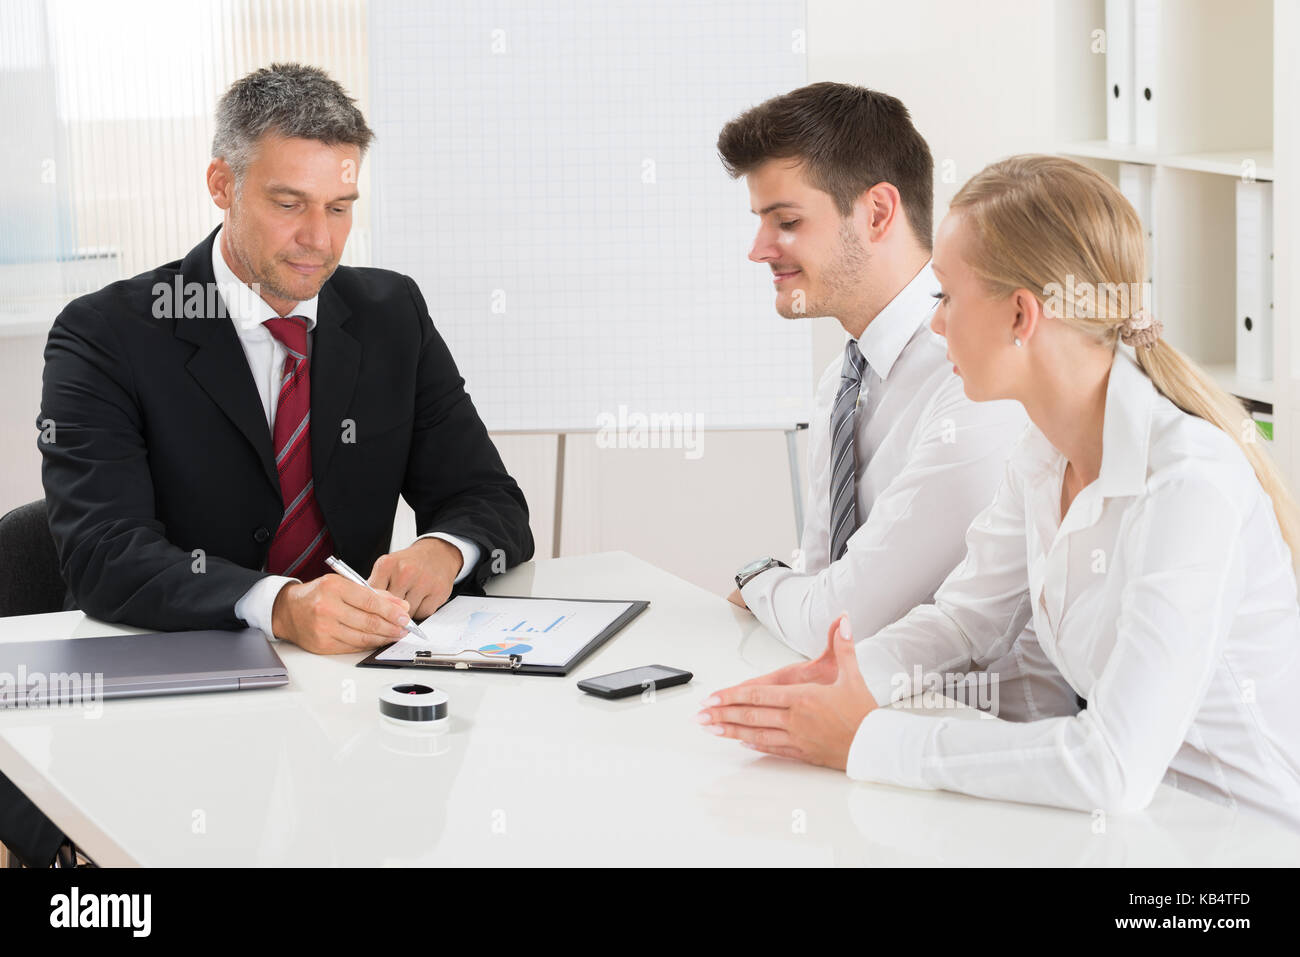 Group Of Businesspeople Discussing On Graph At Desk Stock Photo